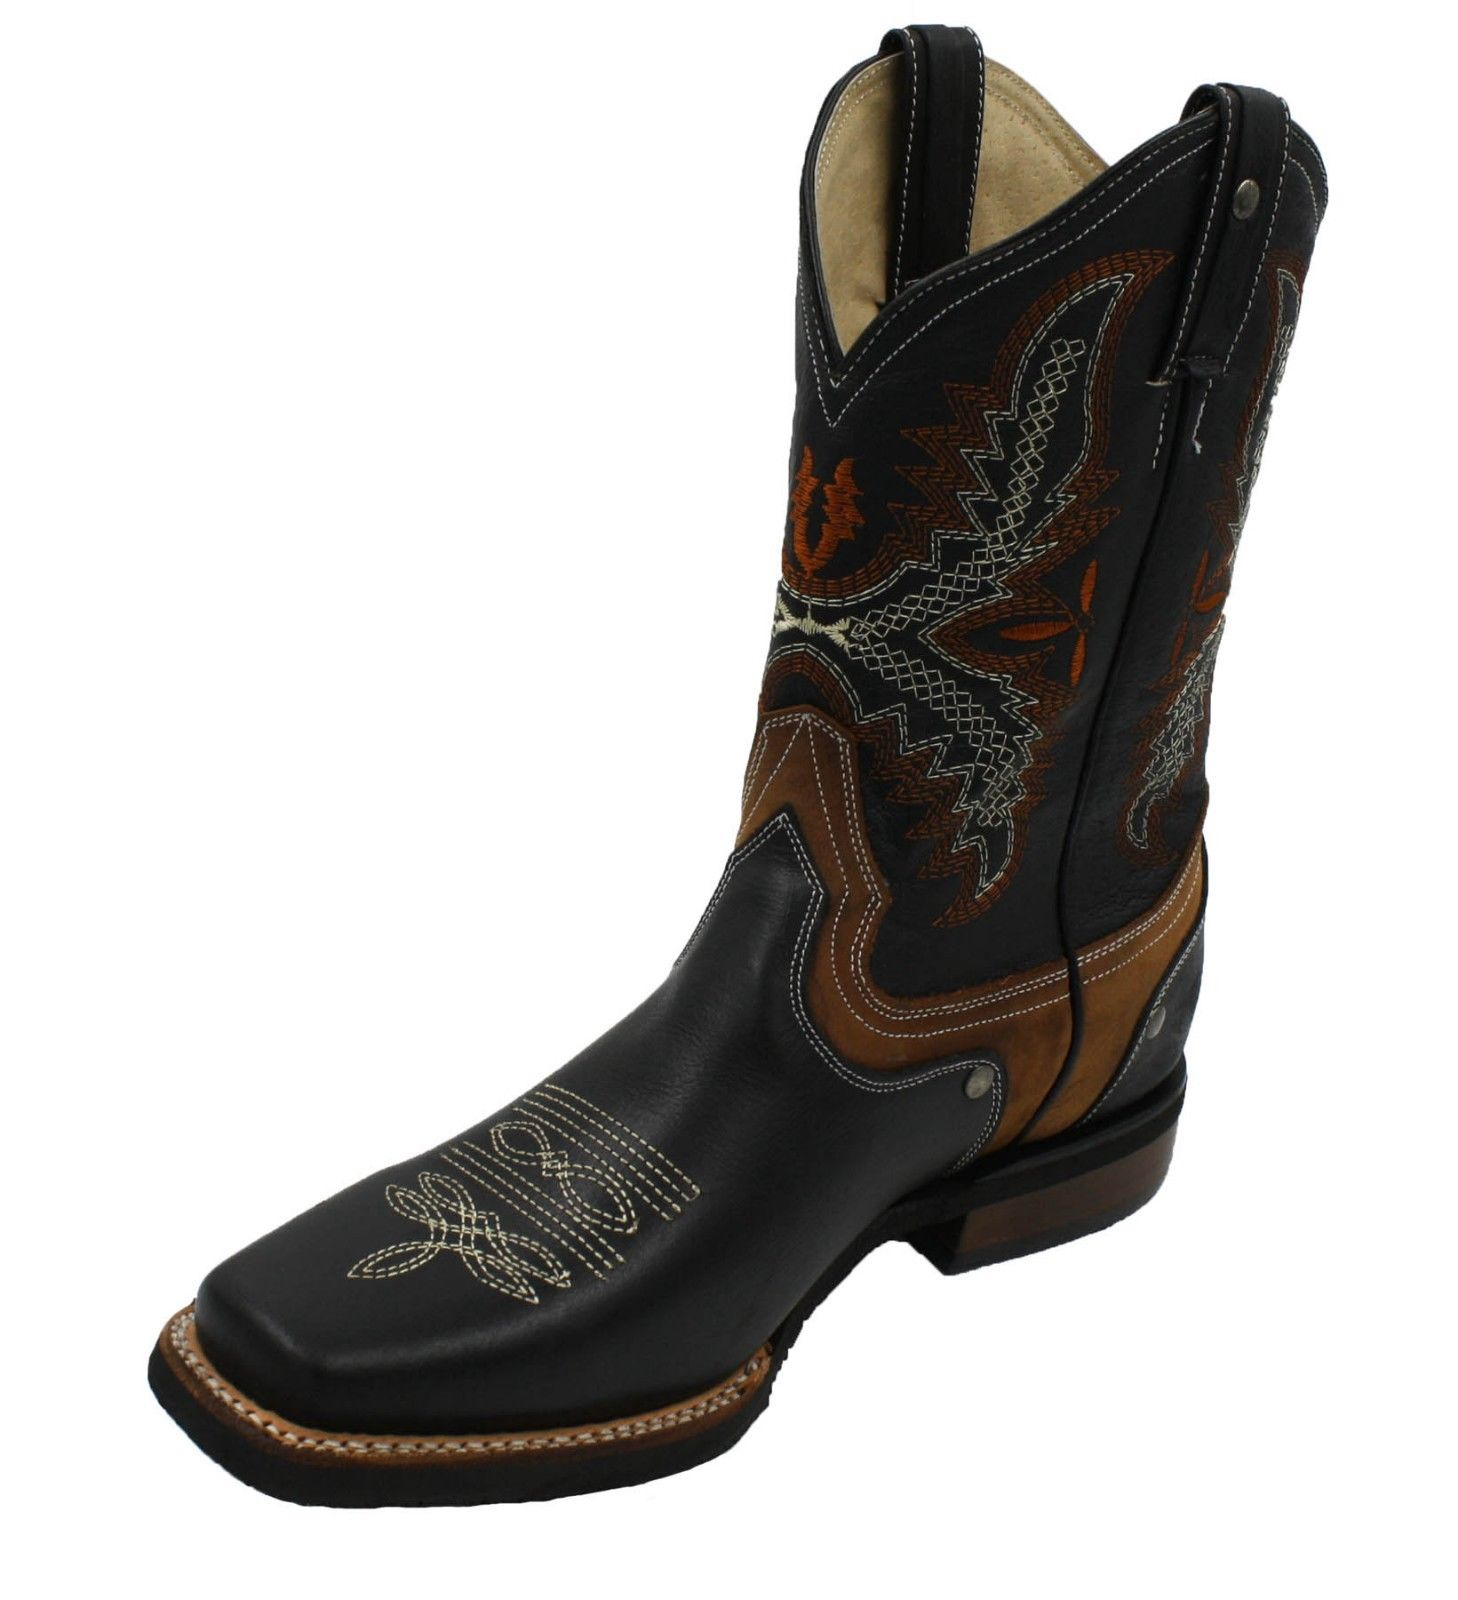 99ec7fba66b MEN'S RODEO COWBOY BOOTS GENUINE LEATHER WESTERN SQUARE TOE BOOTS-940